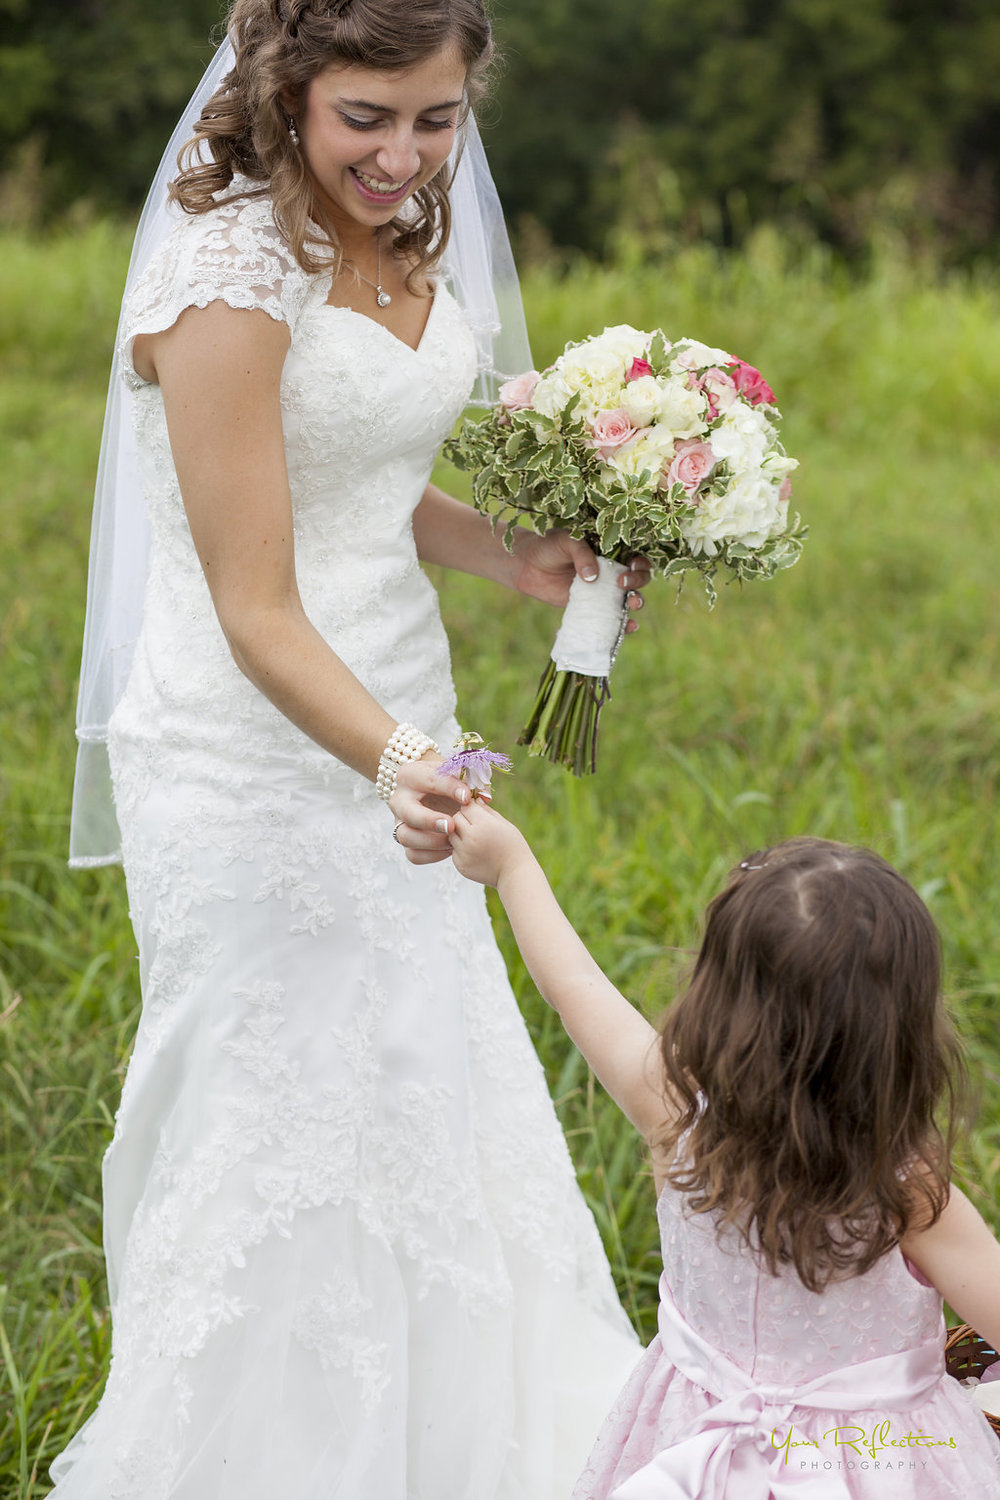 flower girl hands the bride a wildflower.jpg